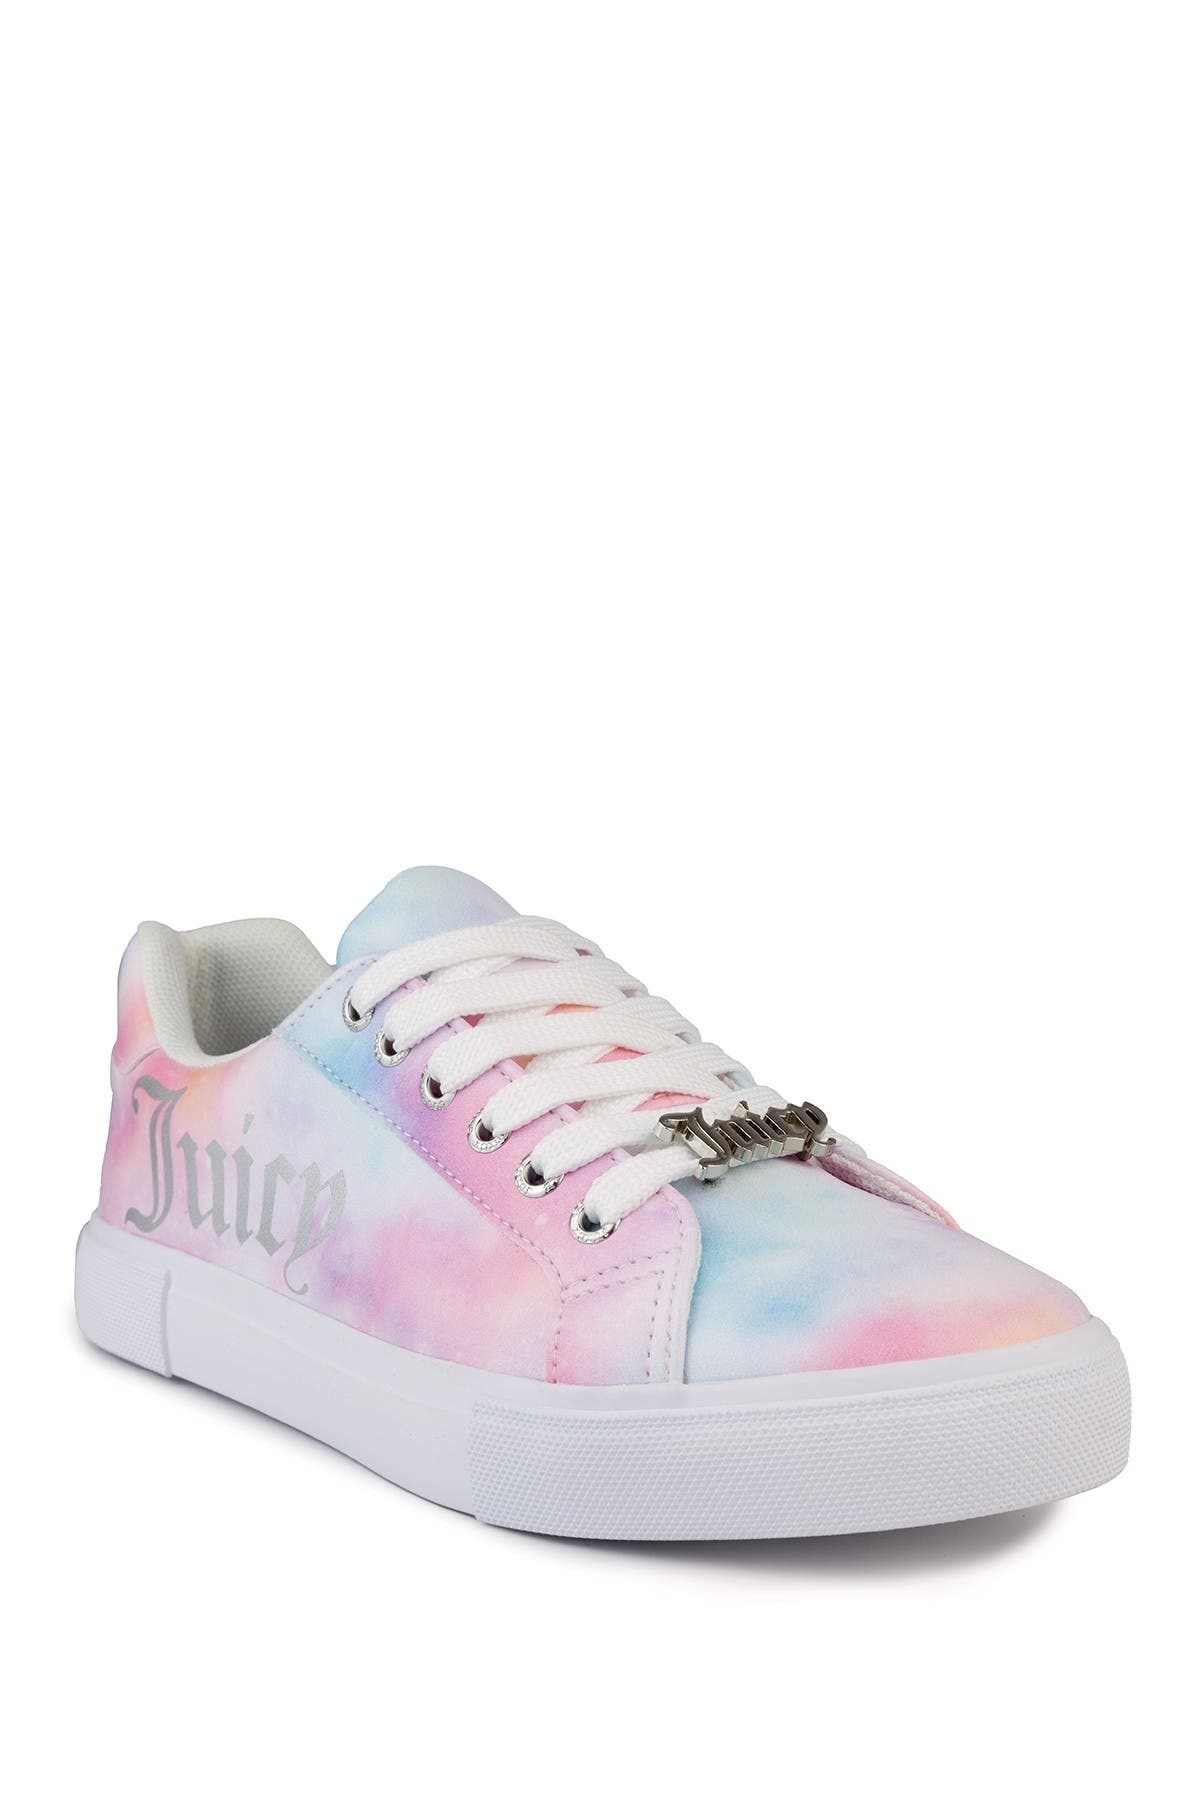 Juicy Couture CLARITY FASHION SNEAKER